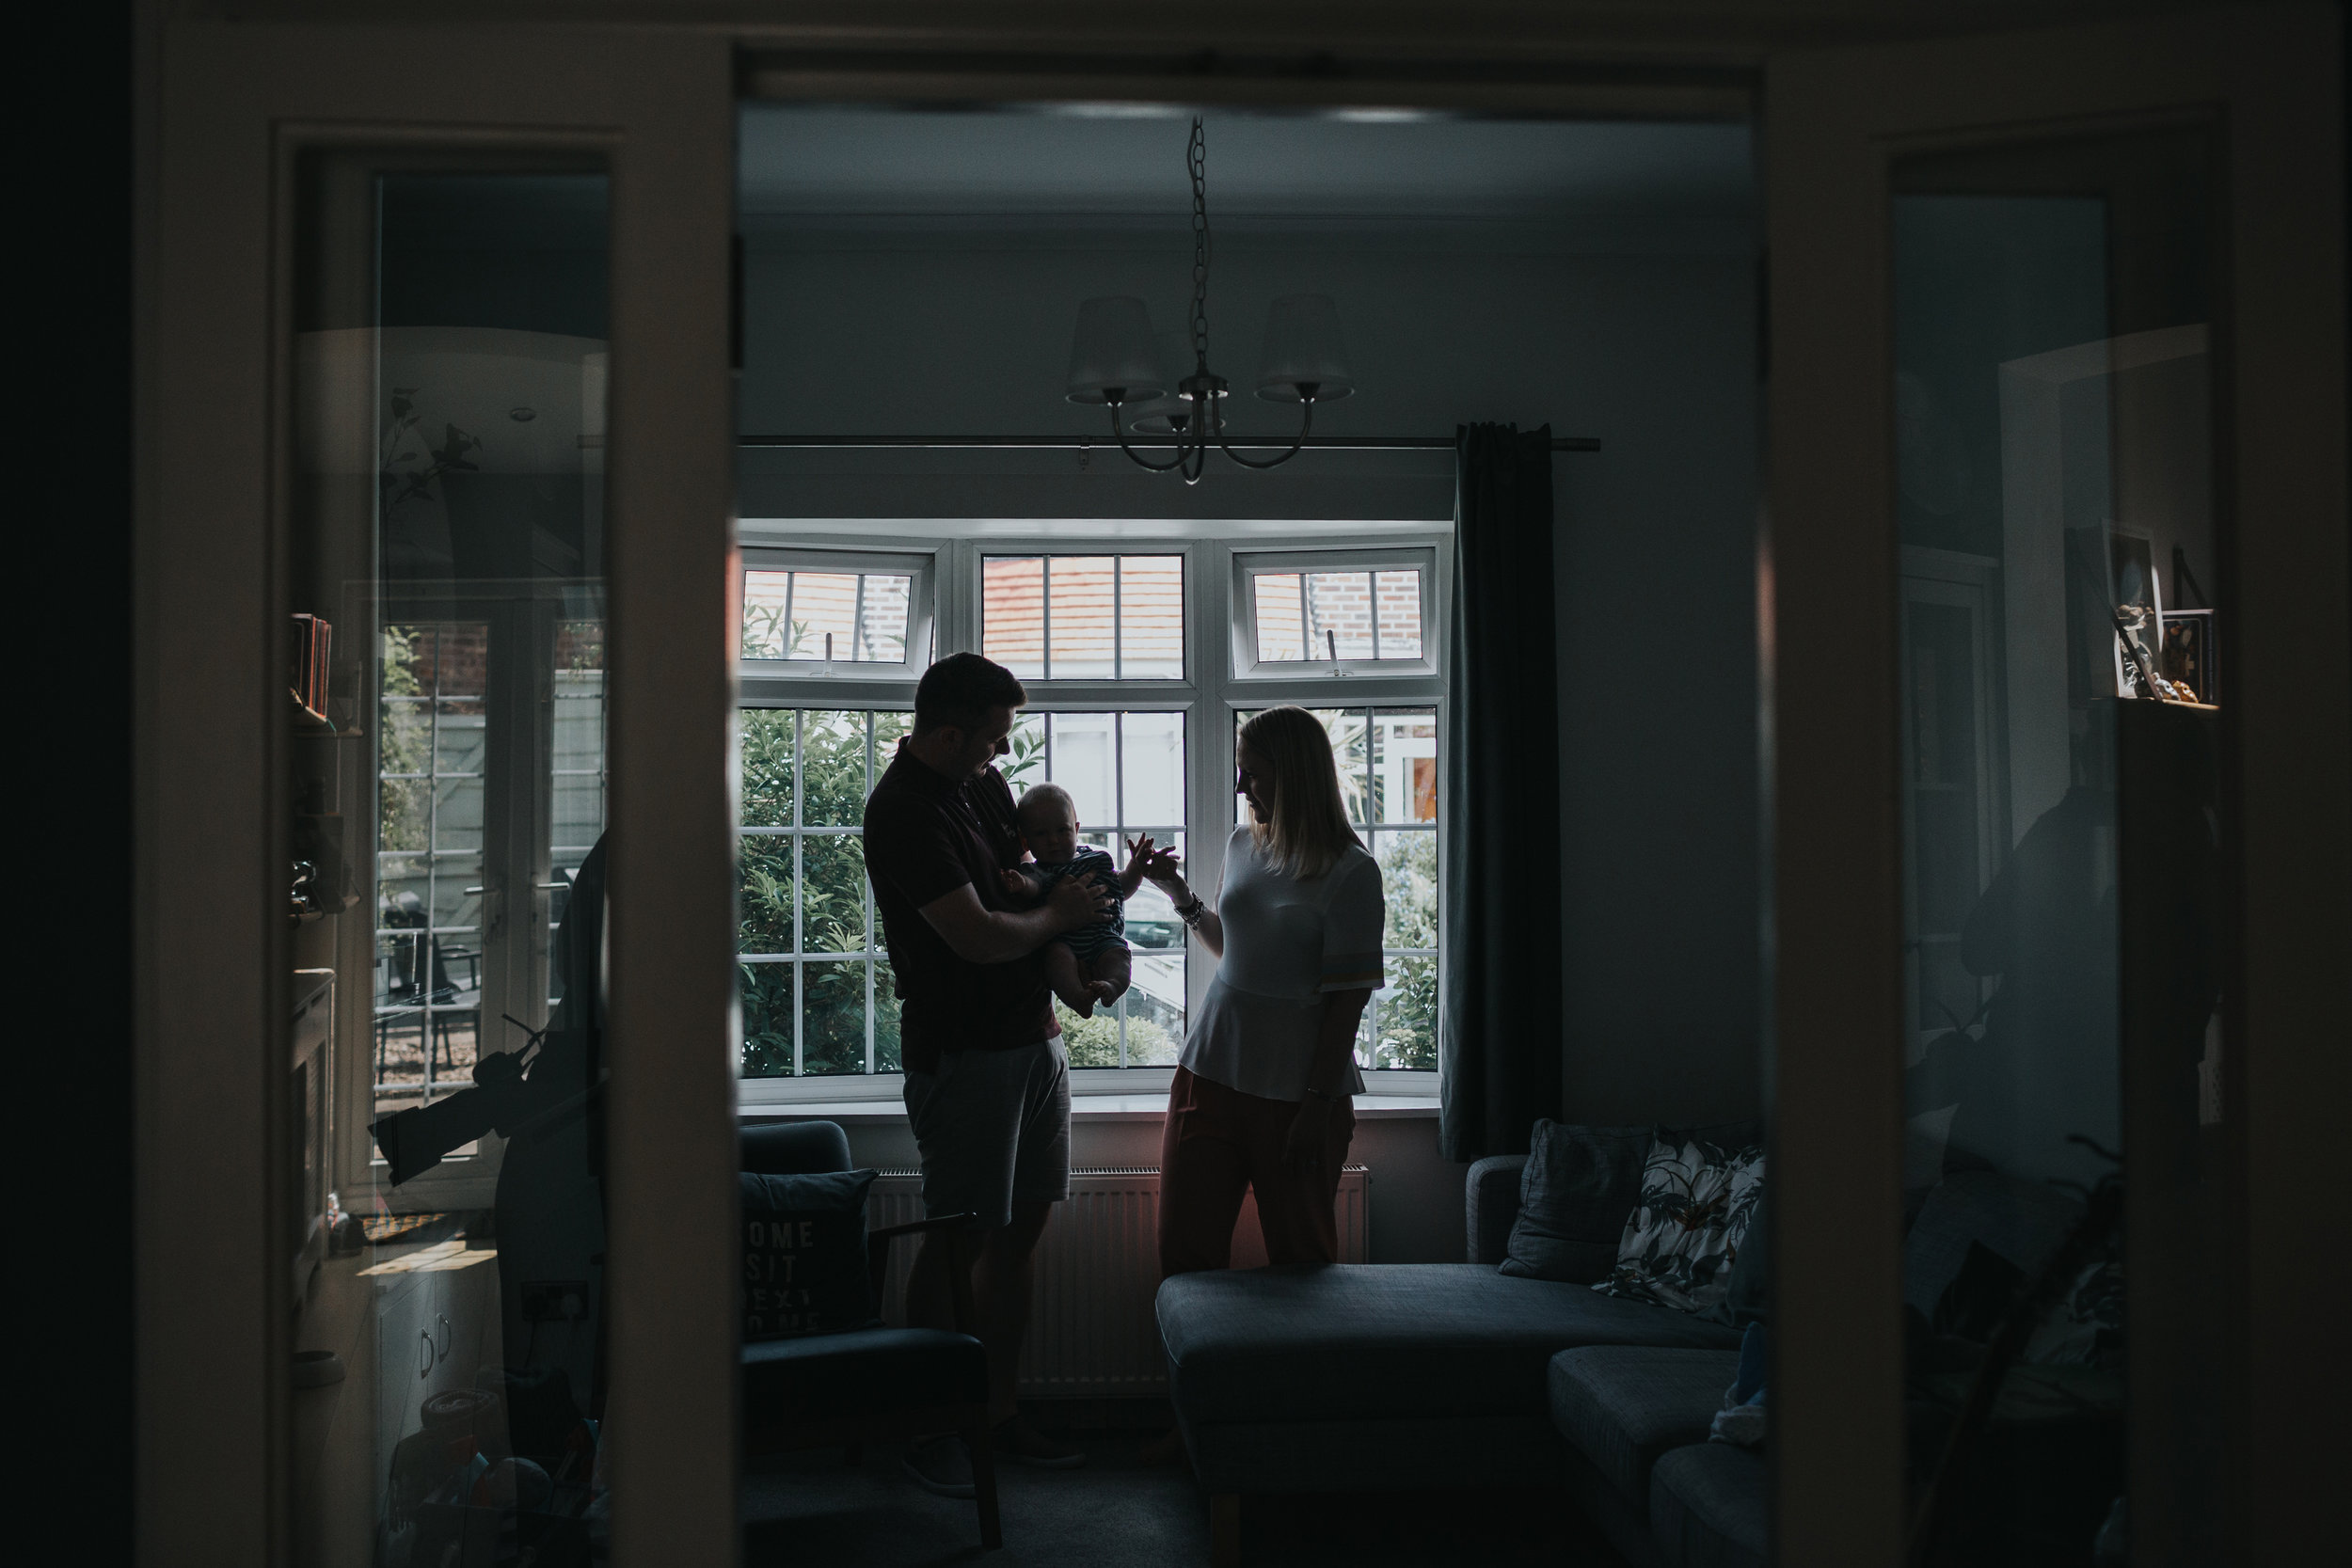 Silhouette of family in front of living room window.